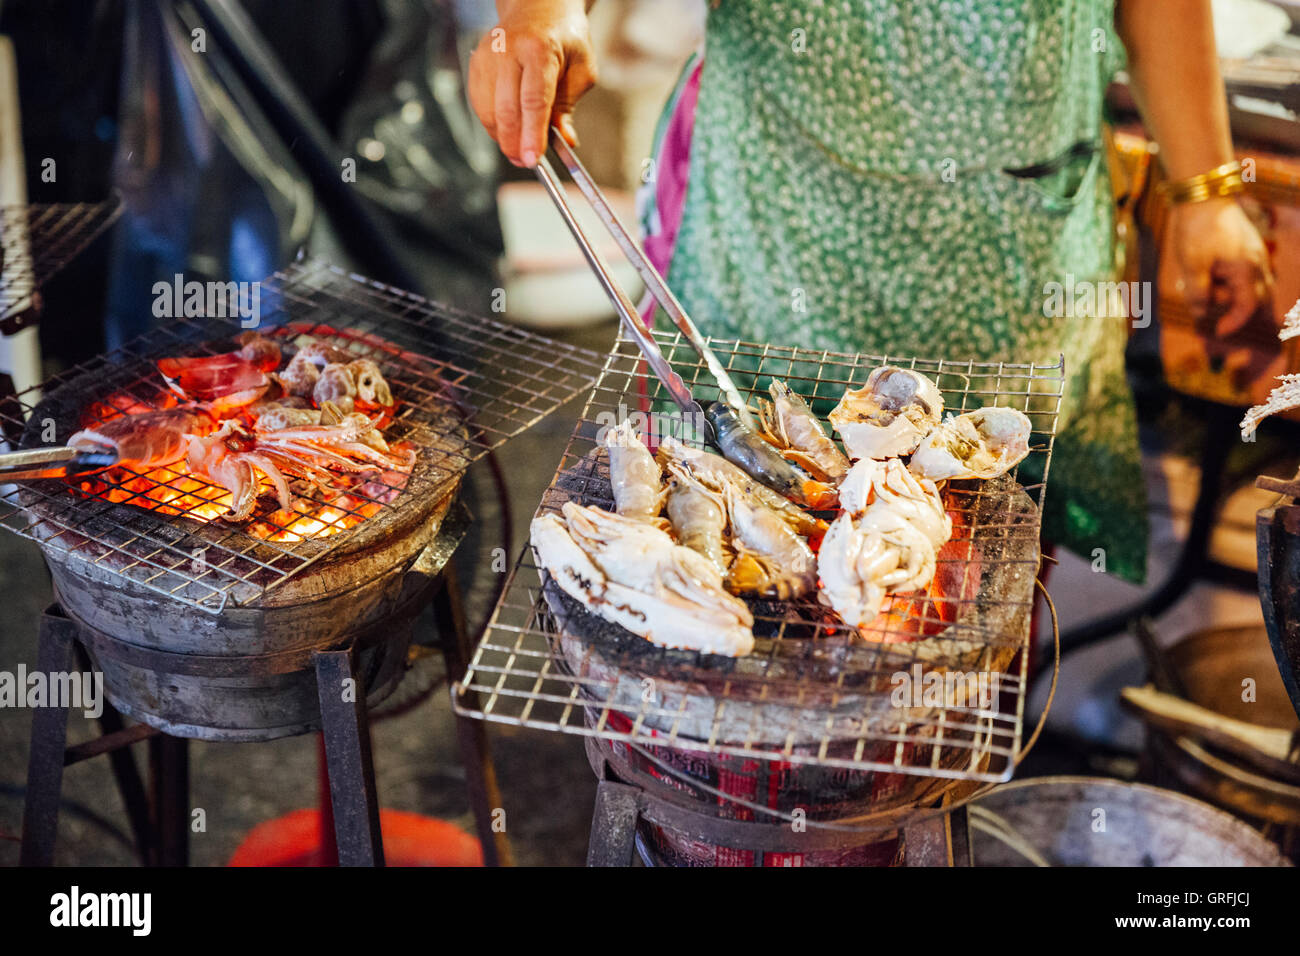 CHIANG MAI, THAILAND - AUGUST 27: Food vendor cooks seafood at the Saturday Night Market (Walking Street) on August - Stock Image